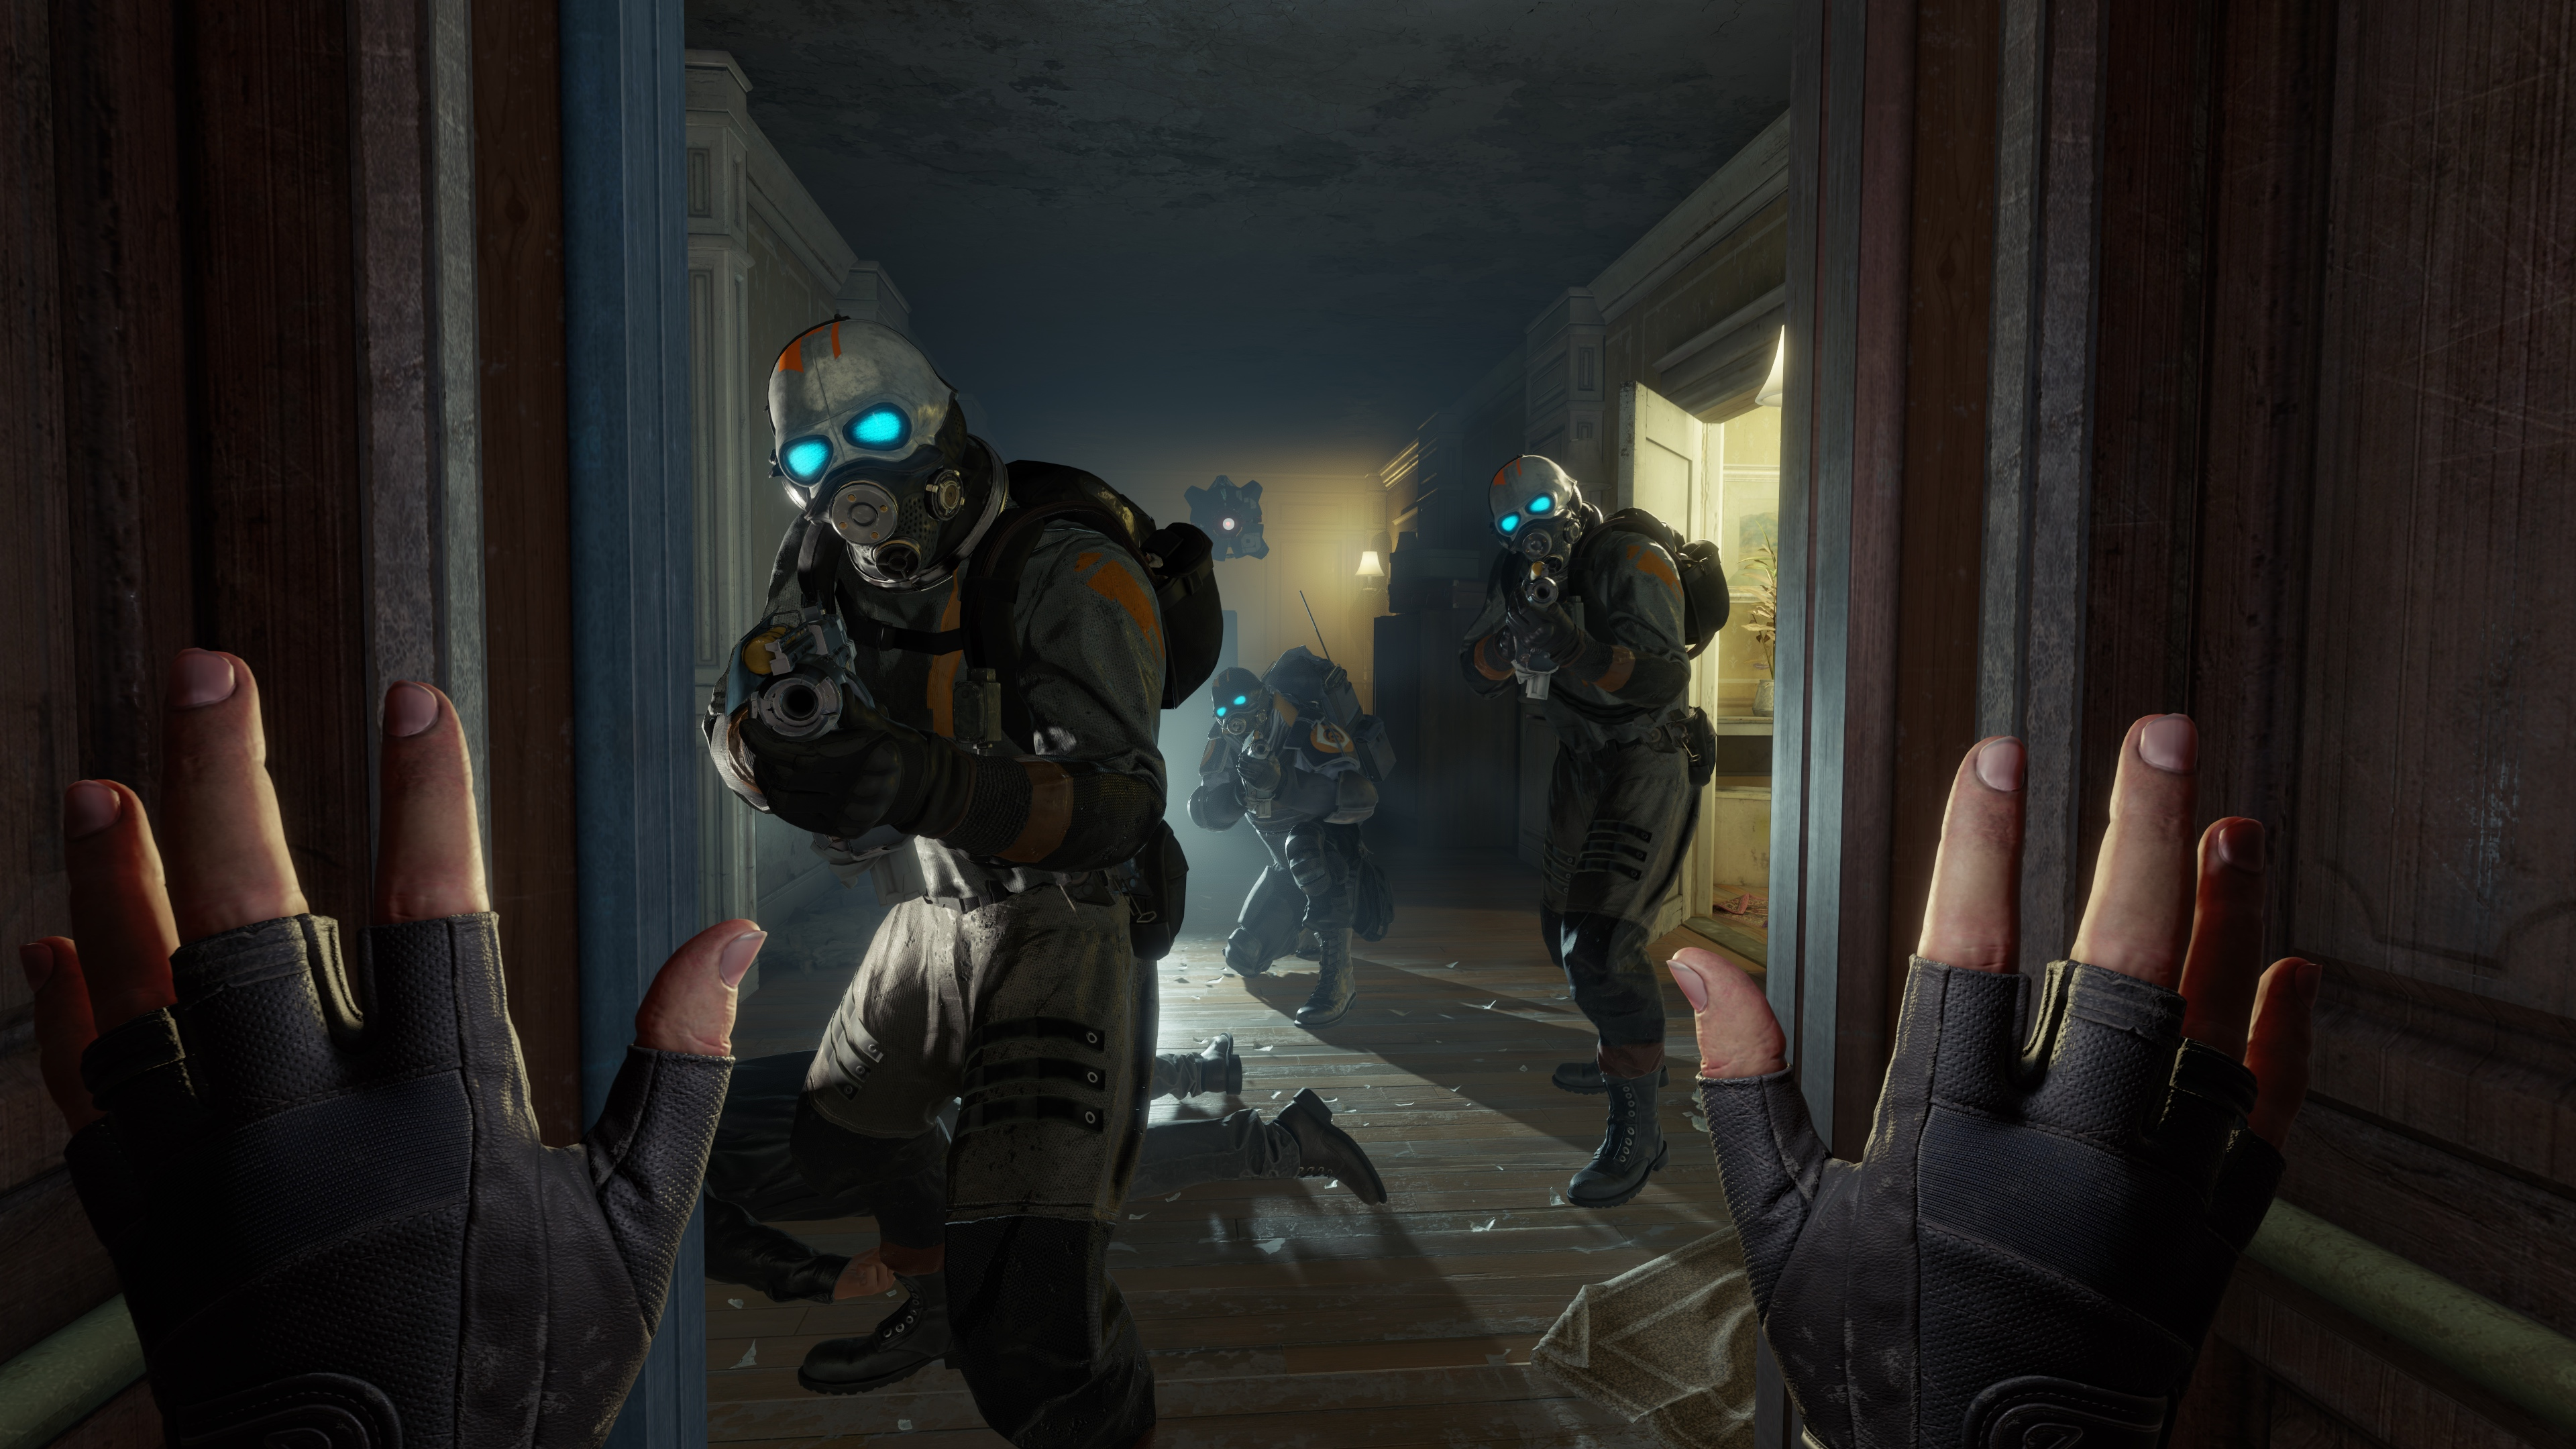 A first-person view of three Combine soldiers aiming at the player with their hands up